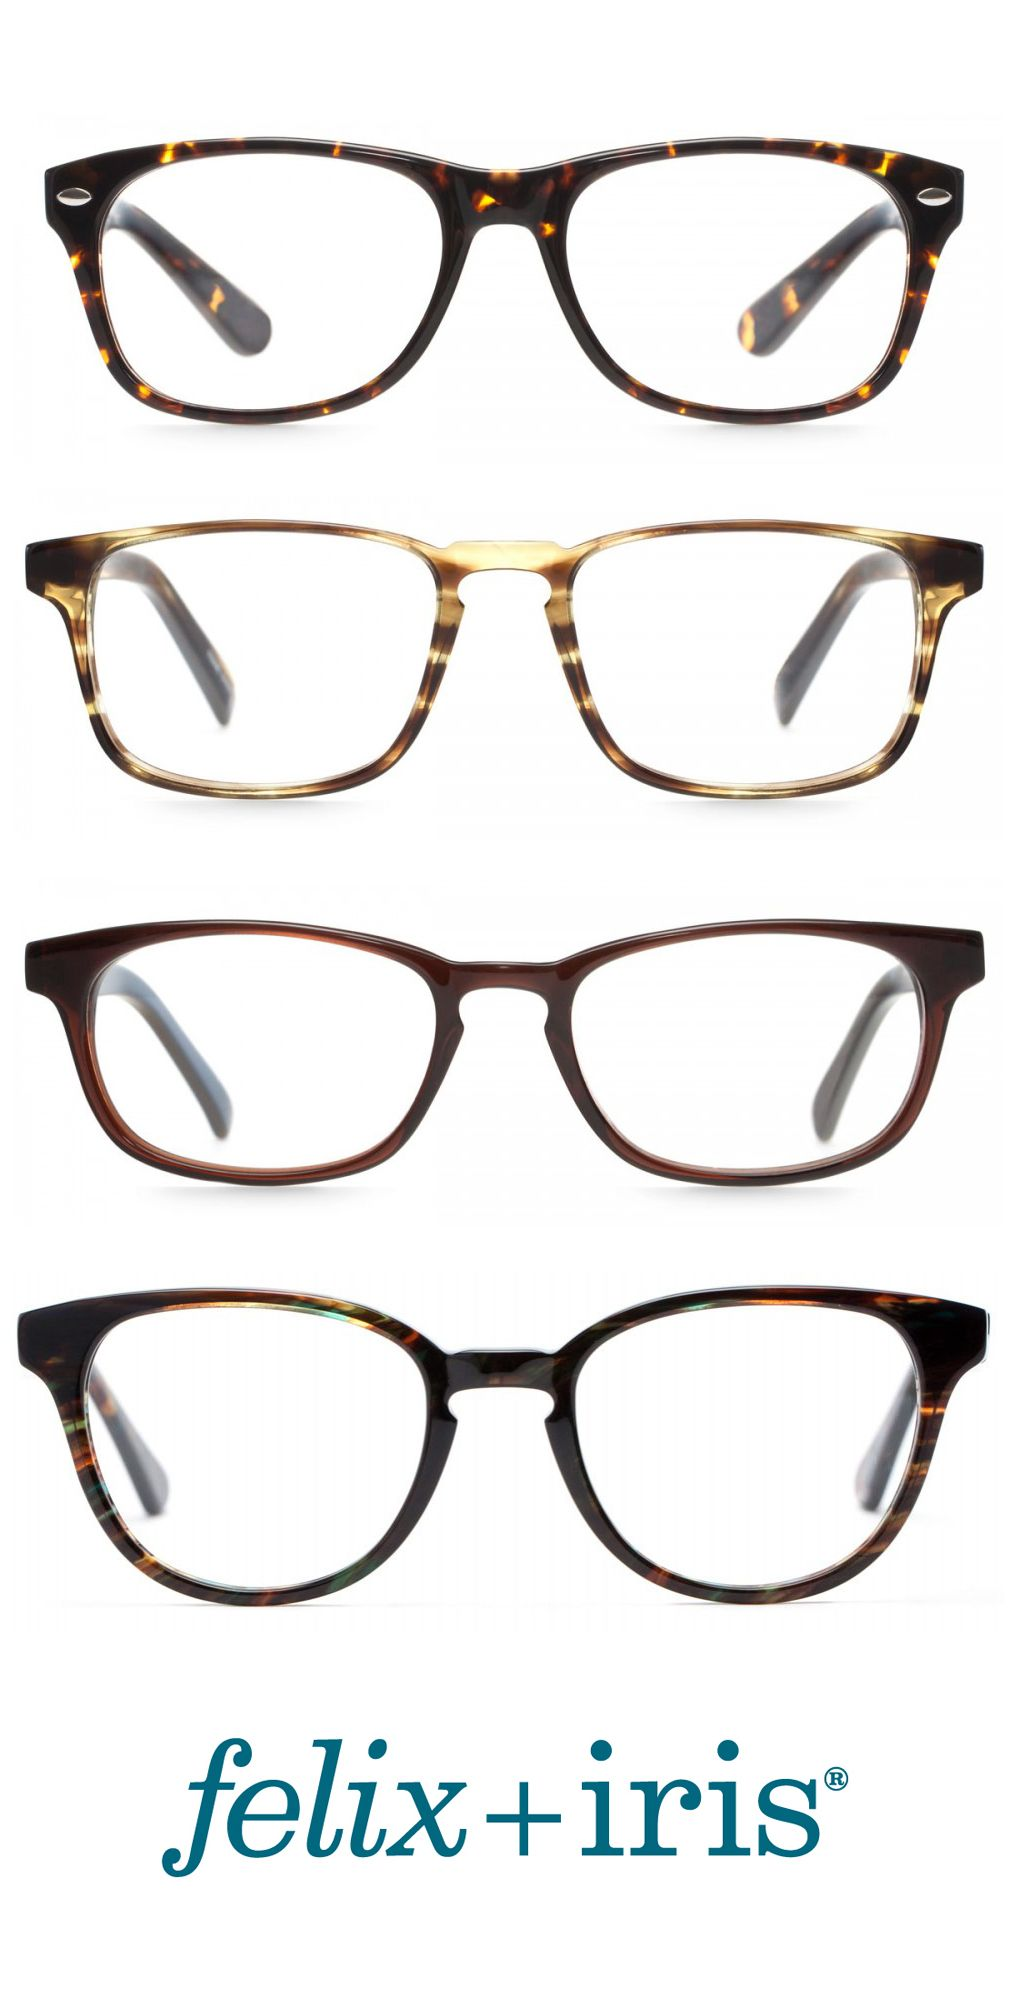 4 Trendy Frame Styles with Long Temples | felix + iris glasses ...